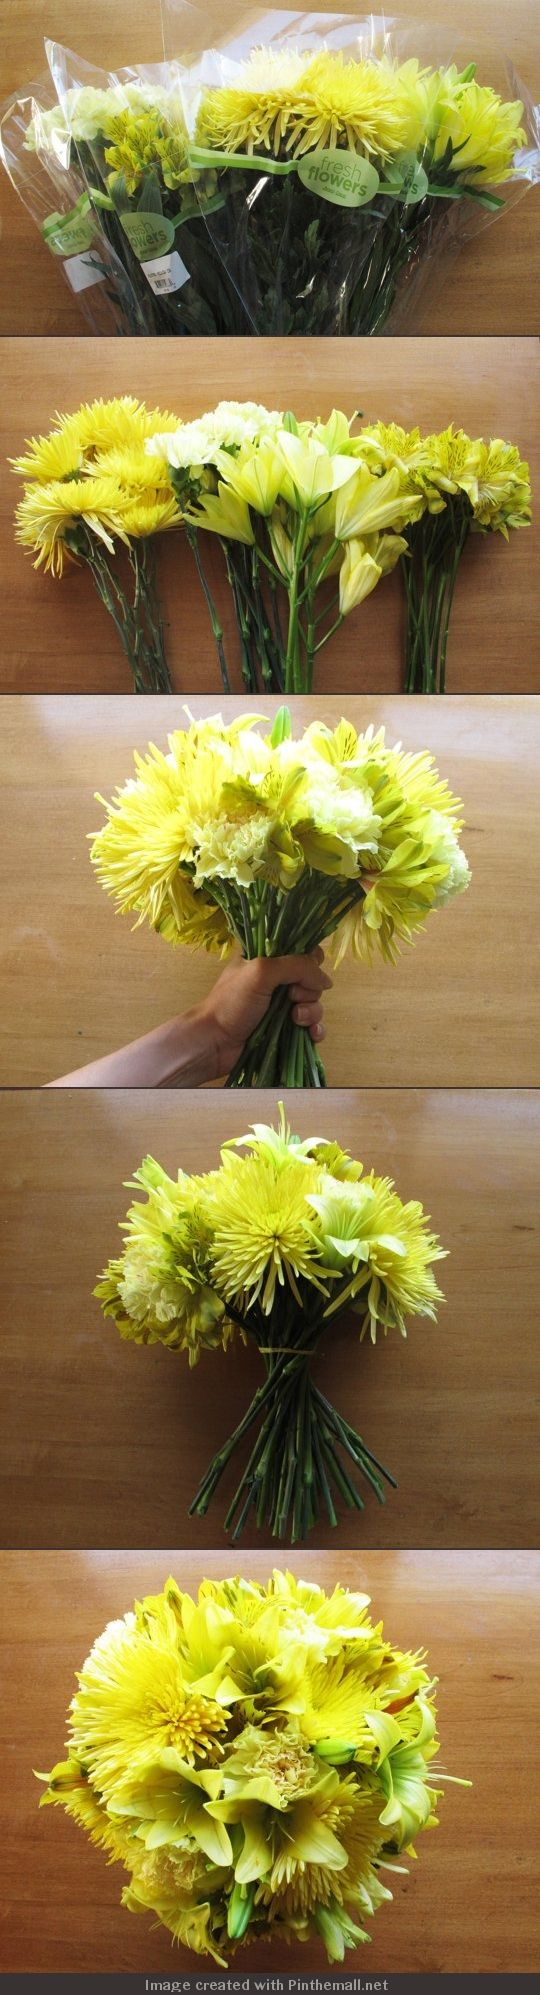 Best 25 cheap flowers ideas on pinterest silk flowers for how to make grocery store flowers look good 1 go monochrome the simple dhlflorist Choice Image